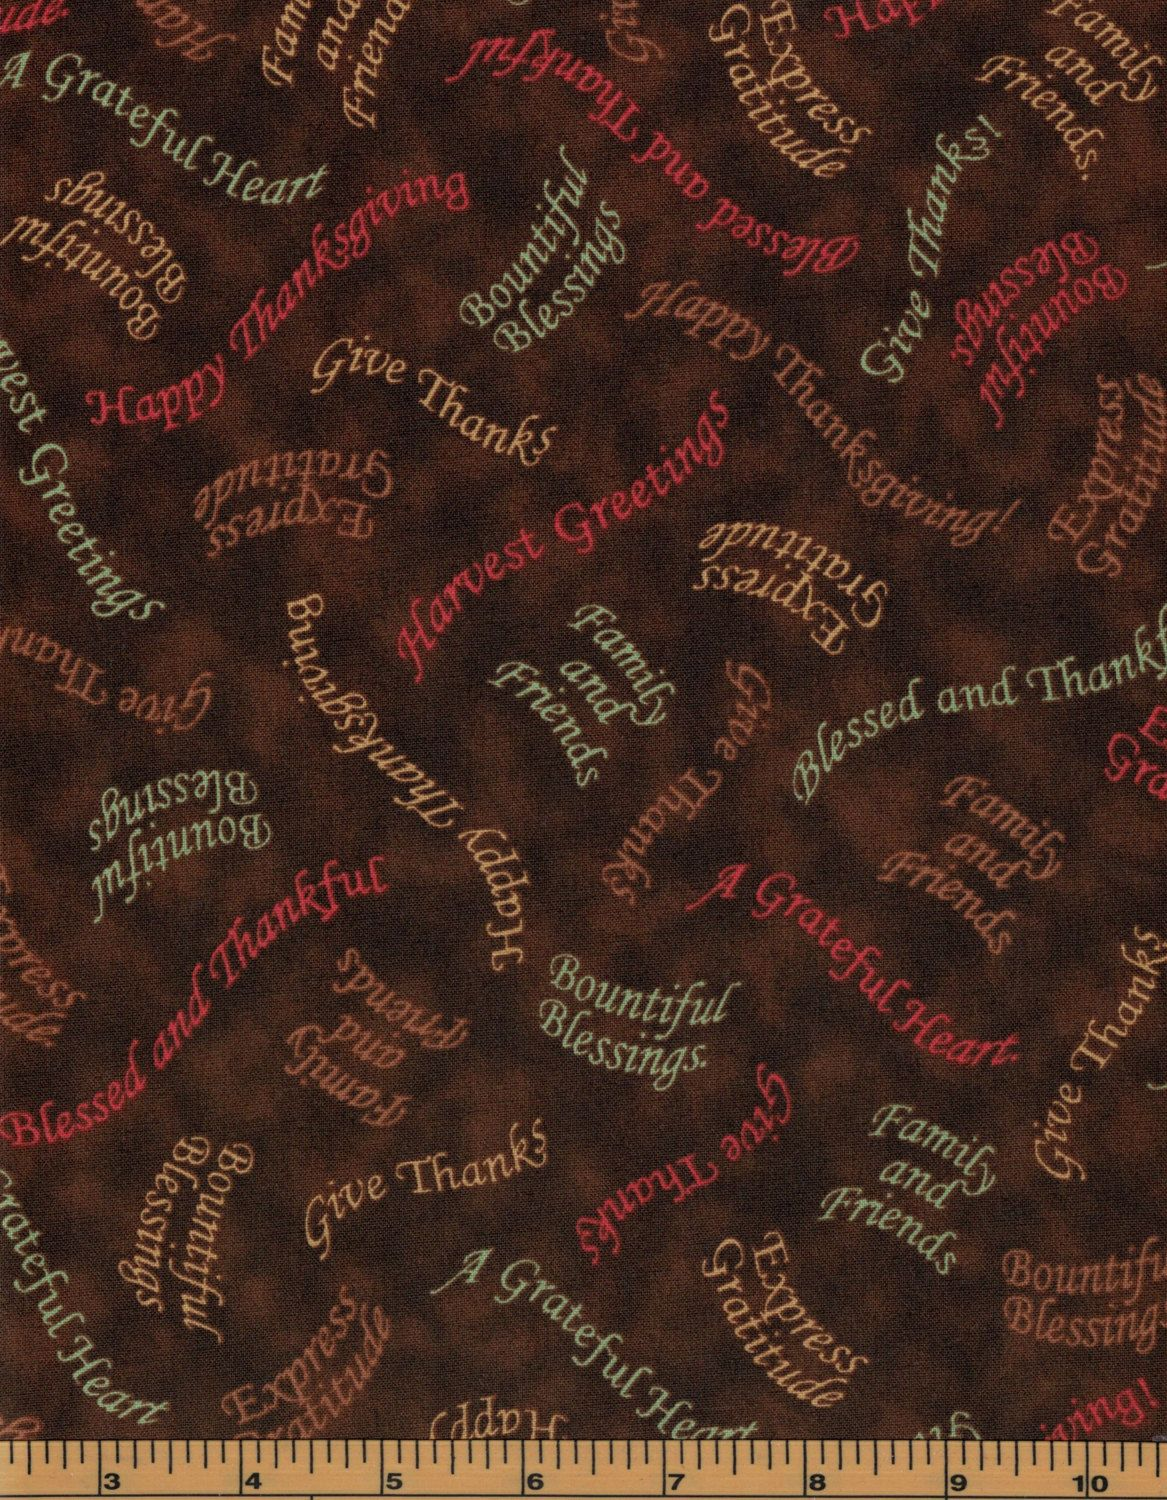 Thanksgiving Words - Bountiful Blessings Collection by Quilting ... : quality quilting fabric - Adamdwight.com